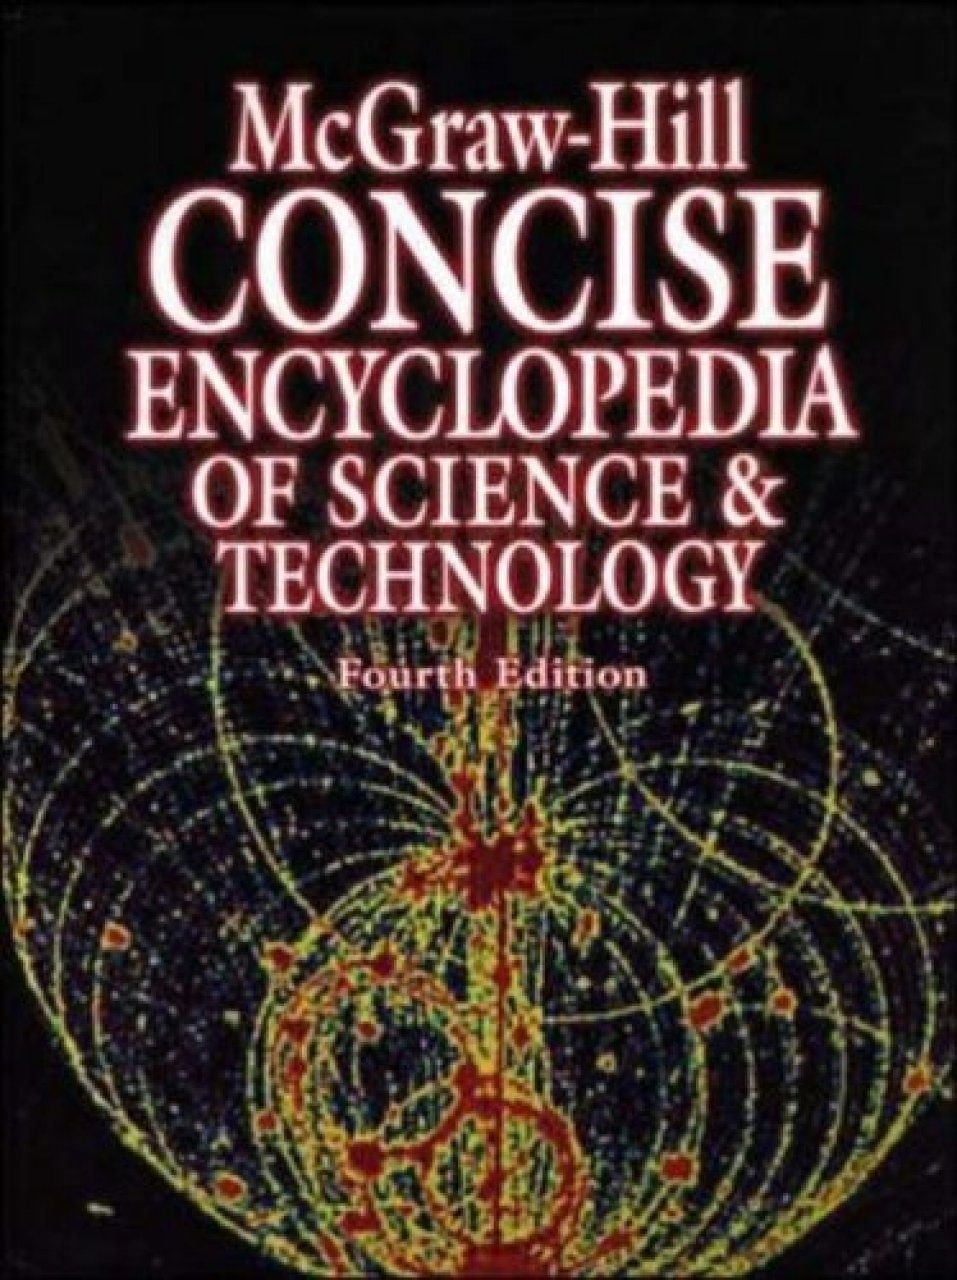 McGraw Hill Concise Encyclopedia of Science and Technology